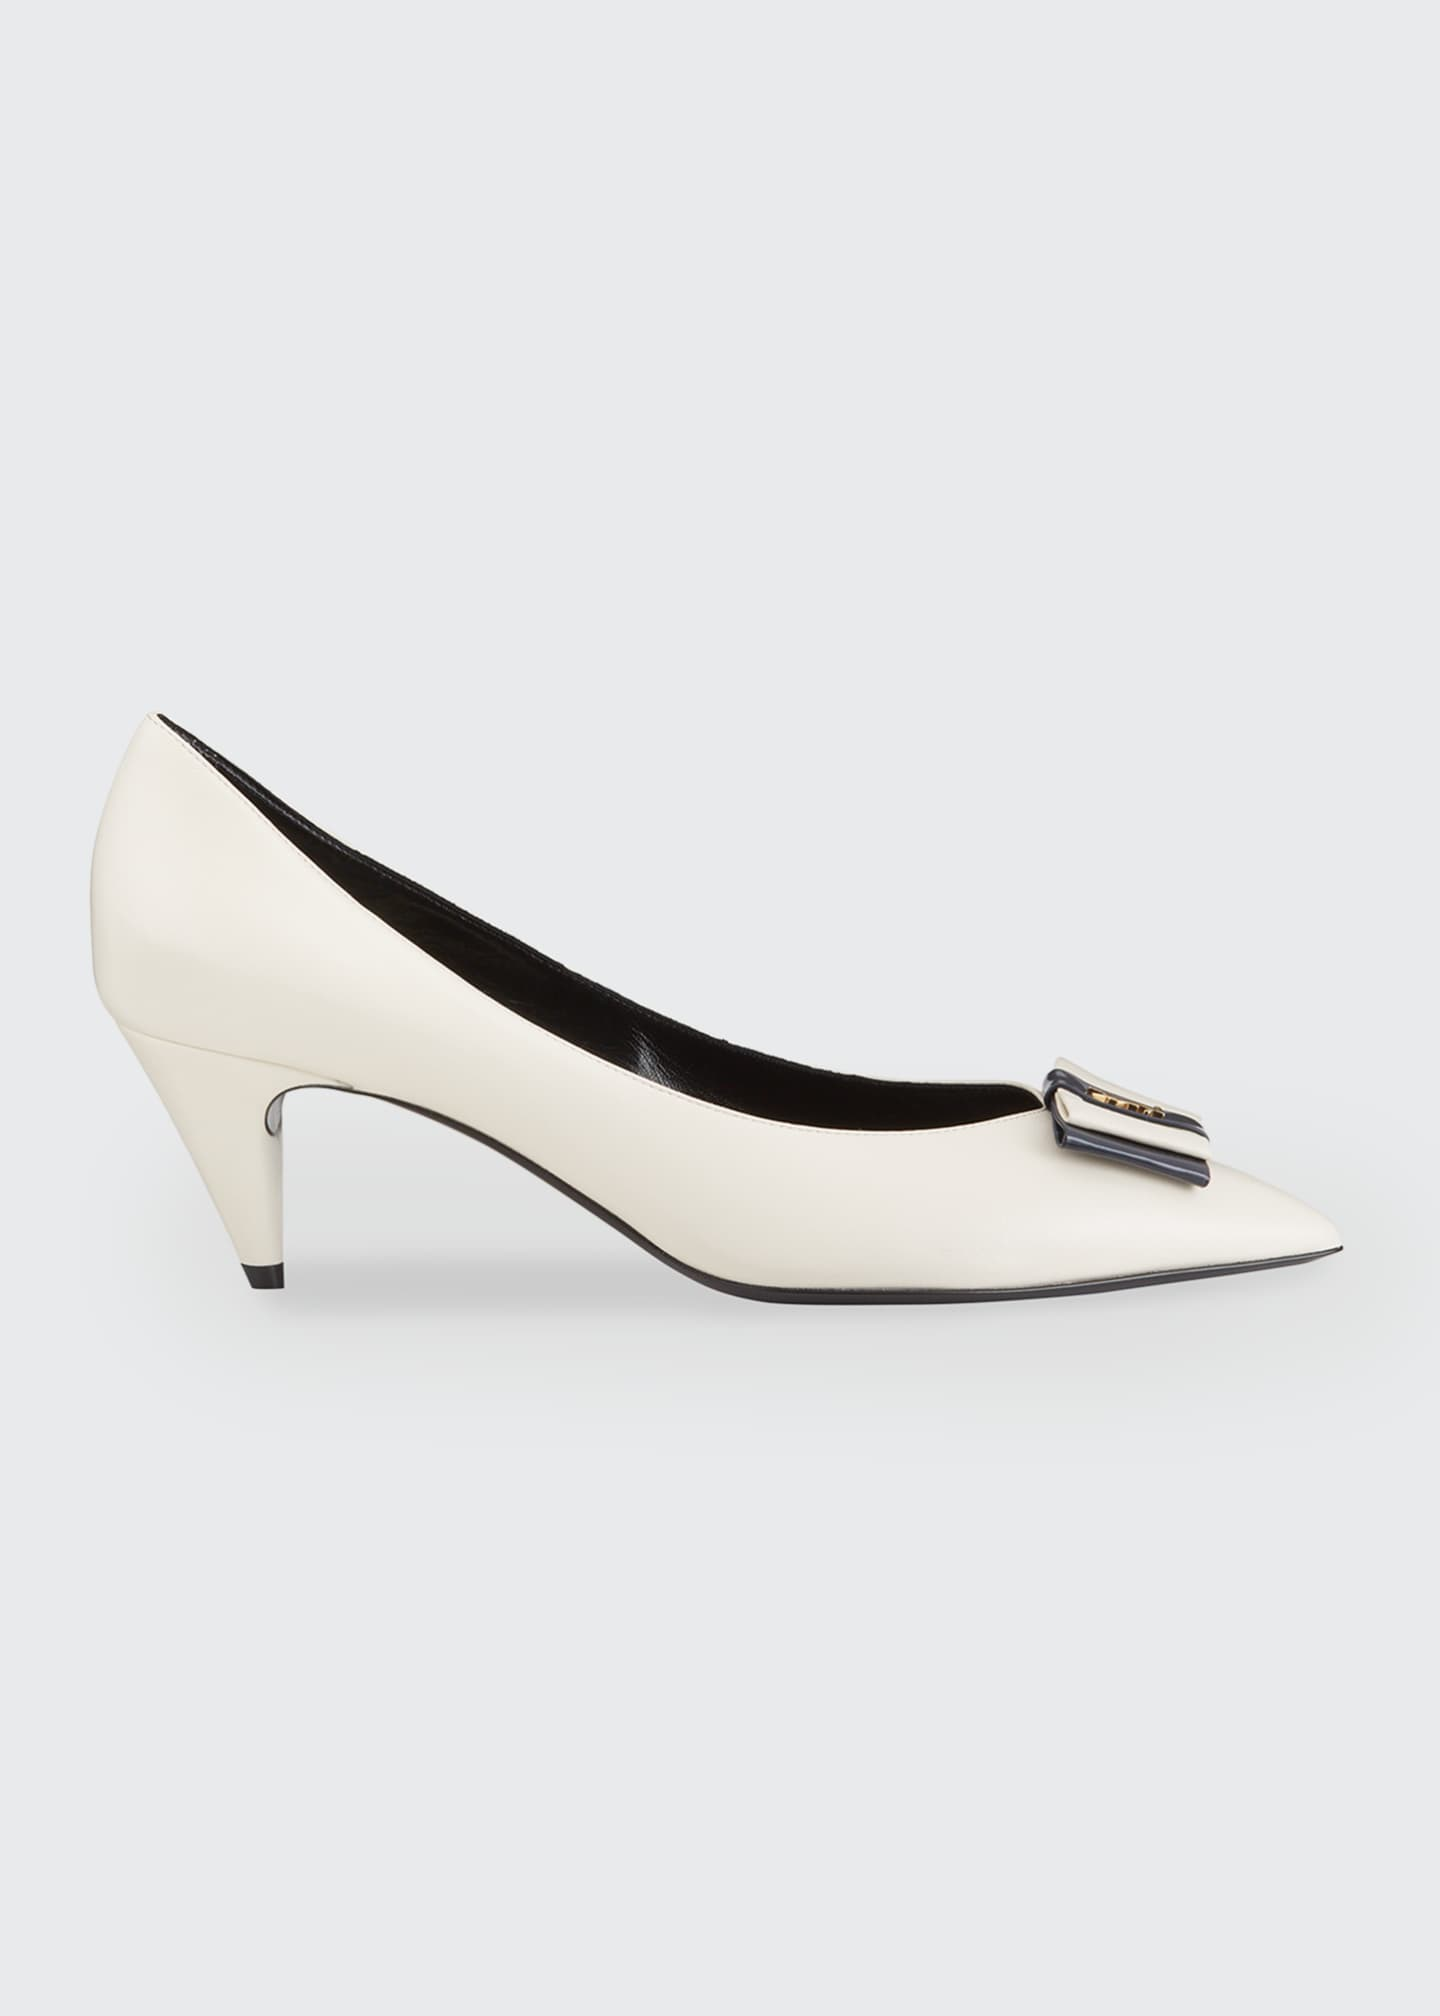 Image 1 of 5: Anai YSL Bow Leather Pumps